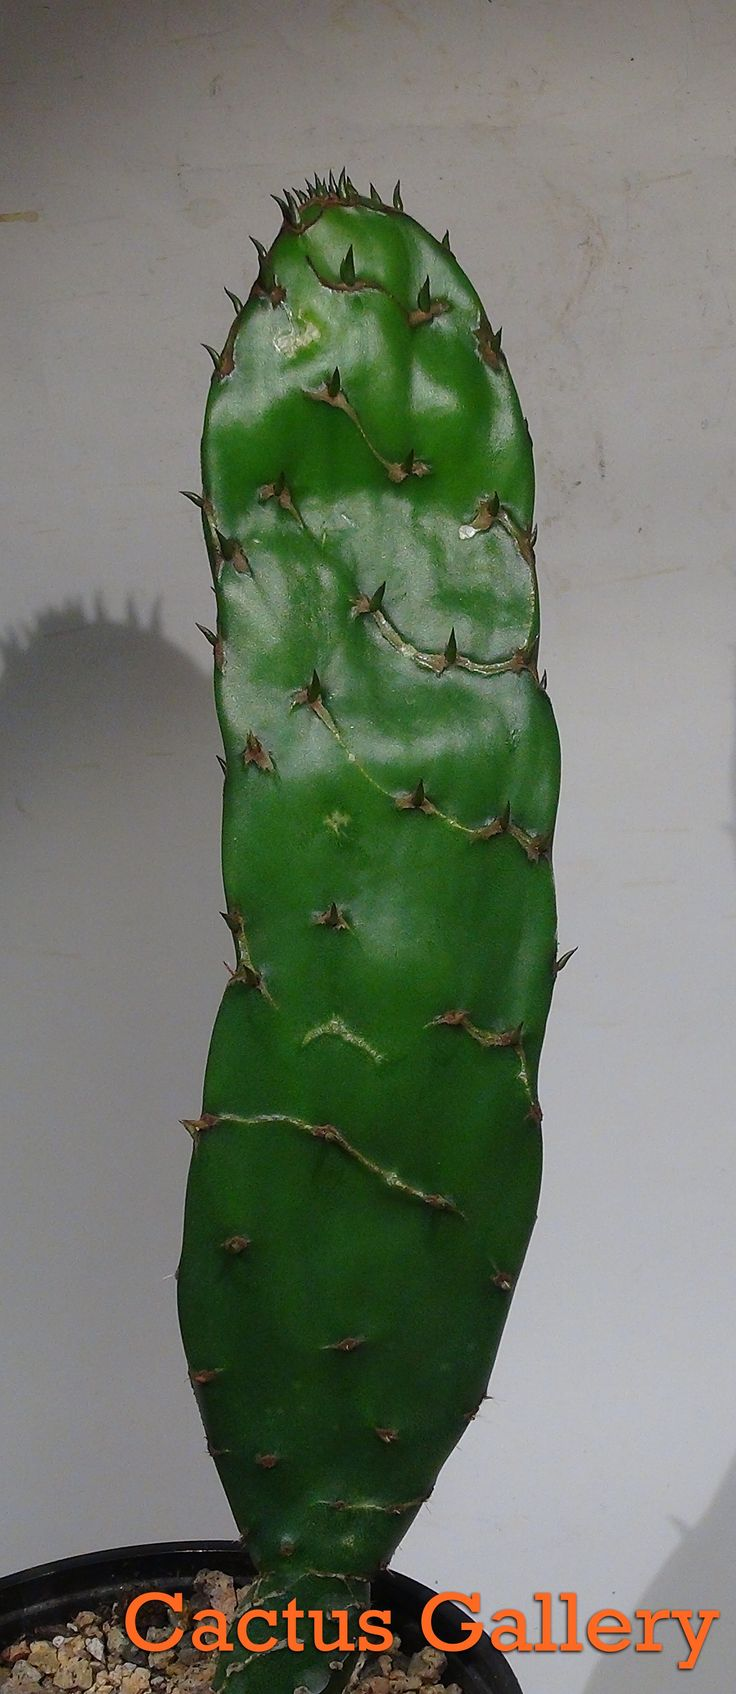 192 Best Images About Tarot: 192 Best Images About Prickly Pear Cactus -Opuntia On